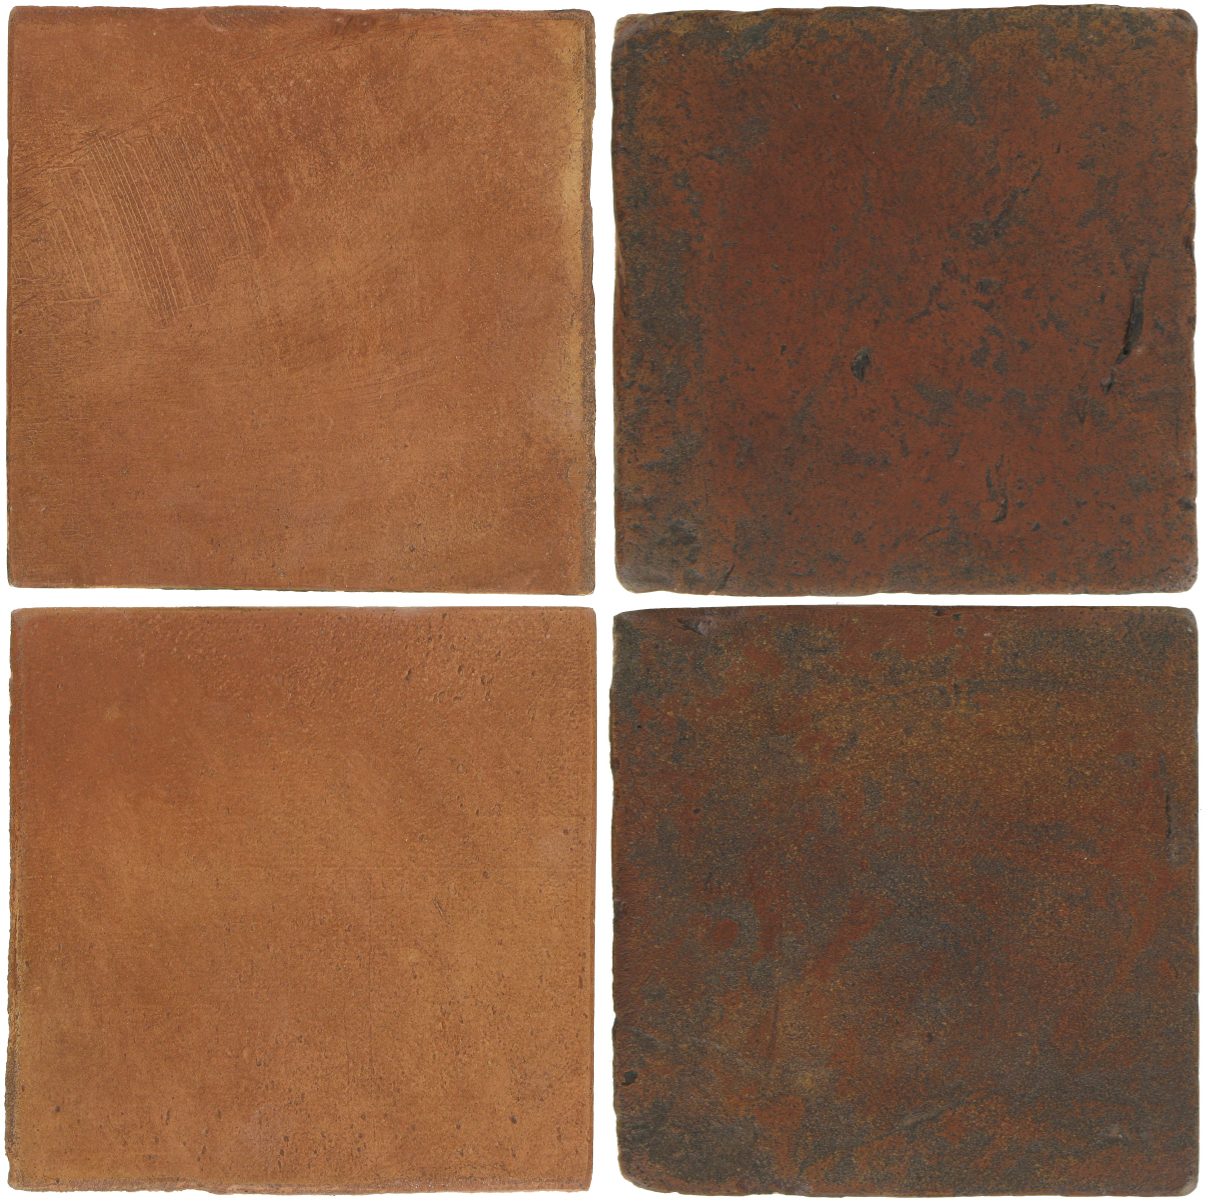 Pedralbes Antique Terracotta  2 Color Combinations  OHS-PSTR Traditional + VTG-PSOW Old World